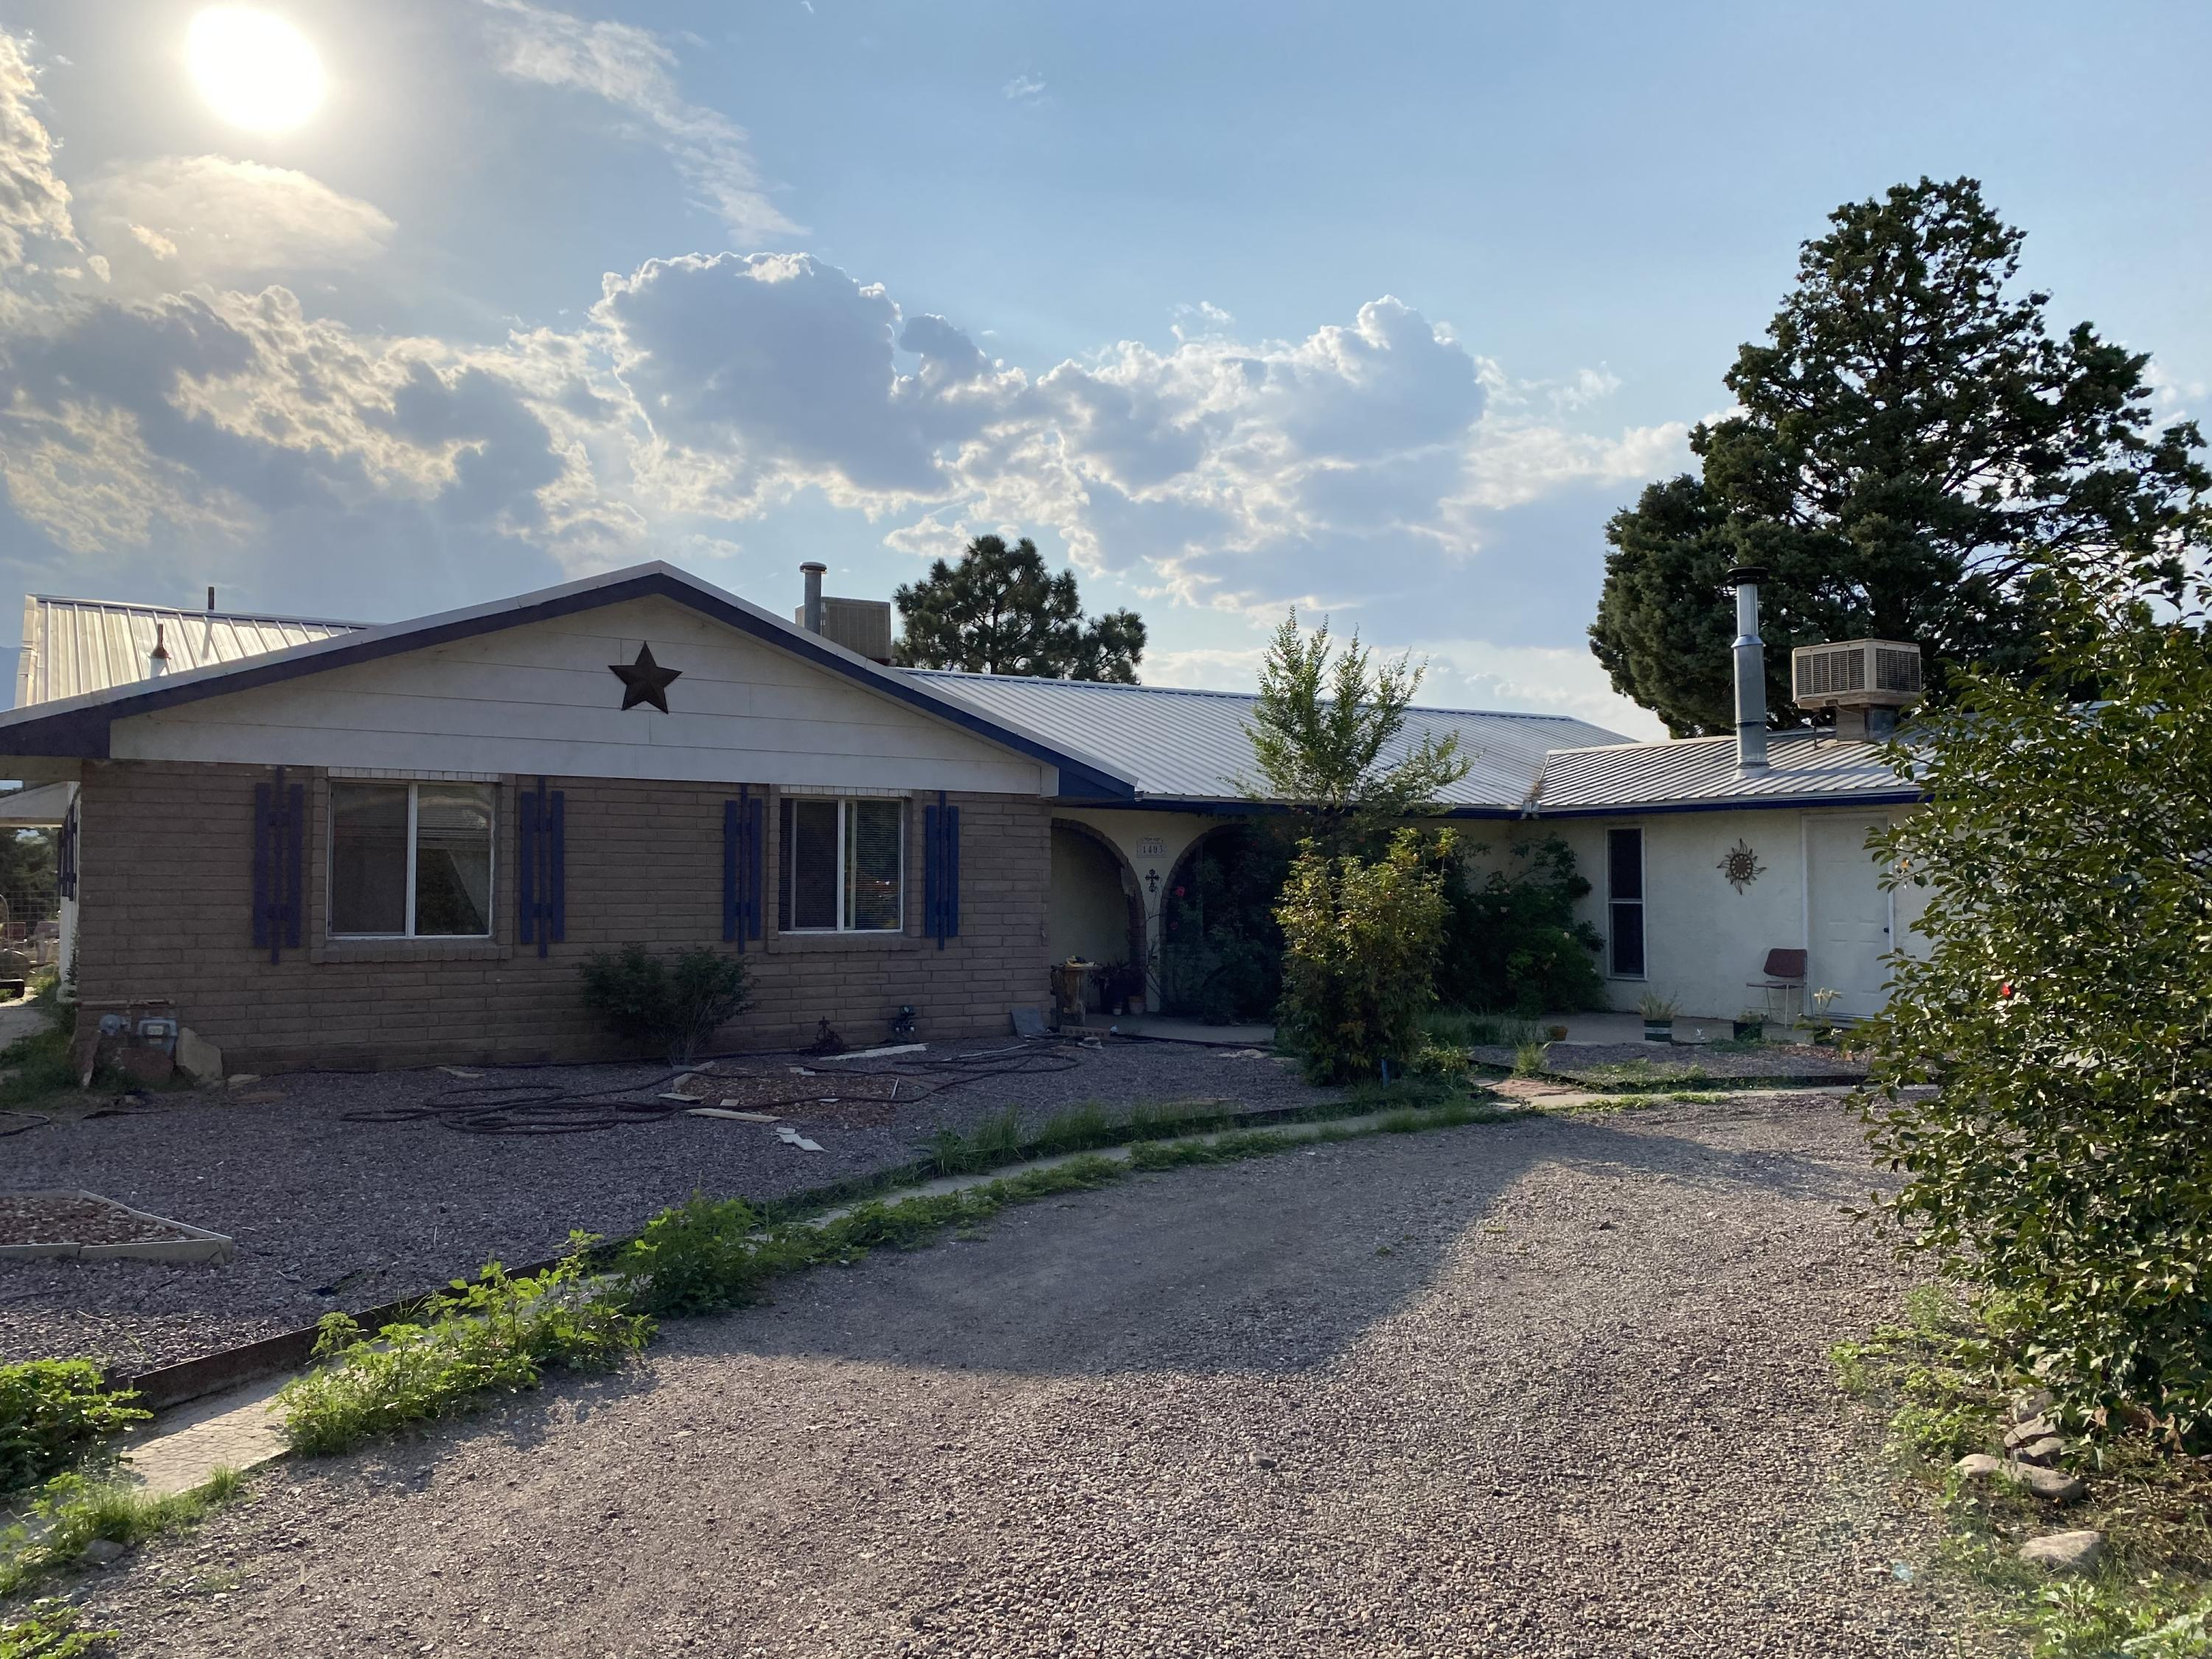 Nice Corner Lot Property, 4 Bedroom 2 Bath, and an apartment right next door with 2 bedroom 1 bath, Property has an open floor plan, lots of space and potential, needs some repairs and TLC Property is currently rented, Showings are allowed only on Saturdays with 24 hr notice.